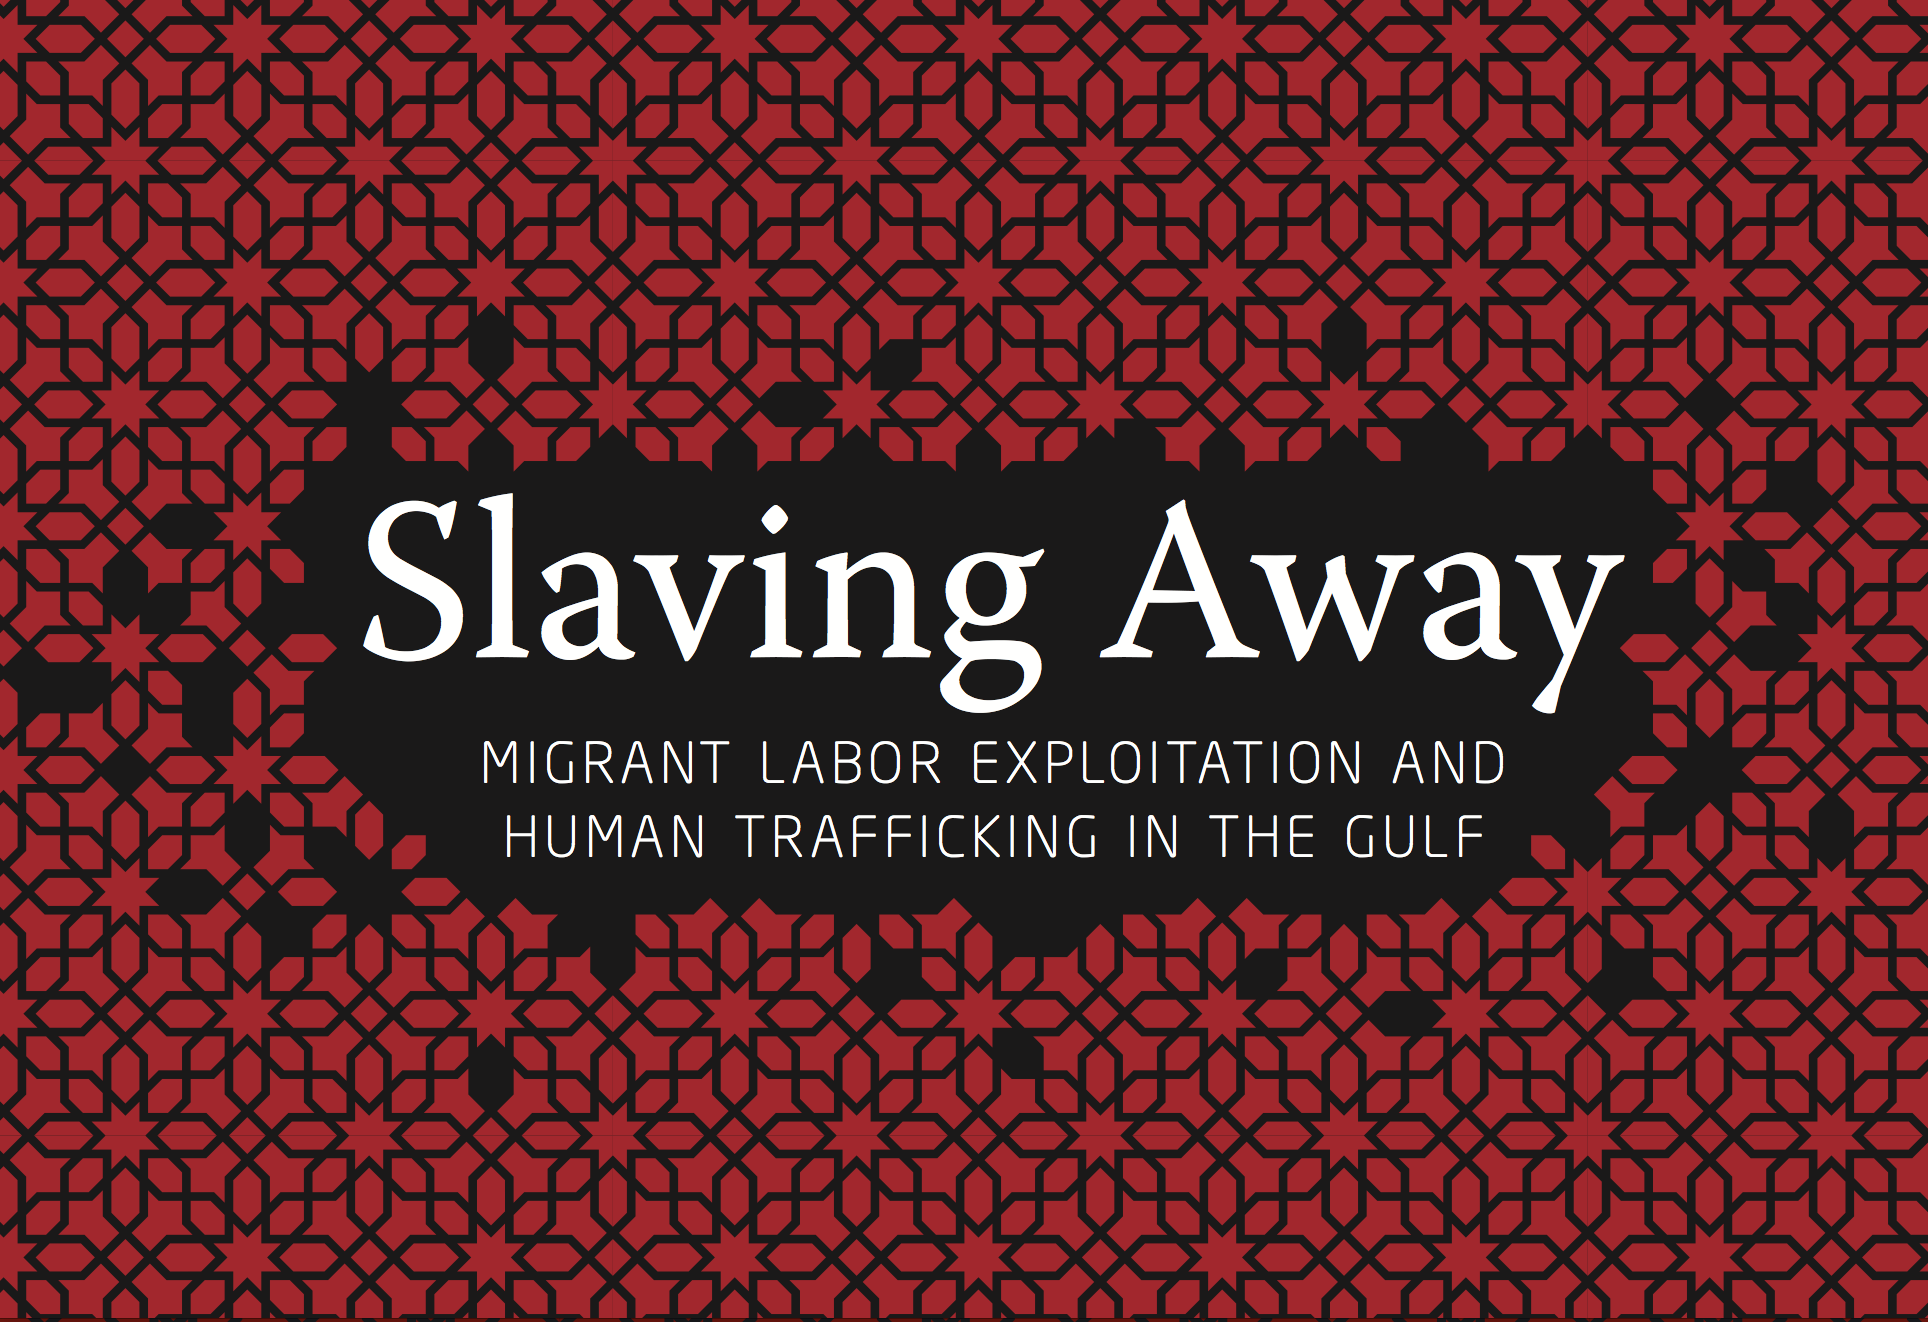 Slaving Away: Migrant Labour Exploitation and Human Trafficking in the Gulf